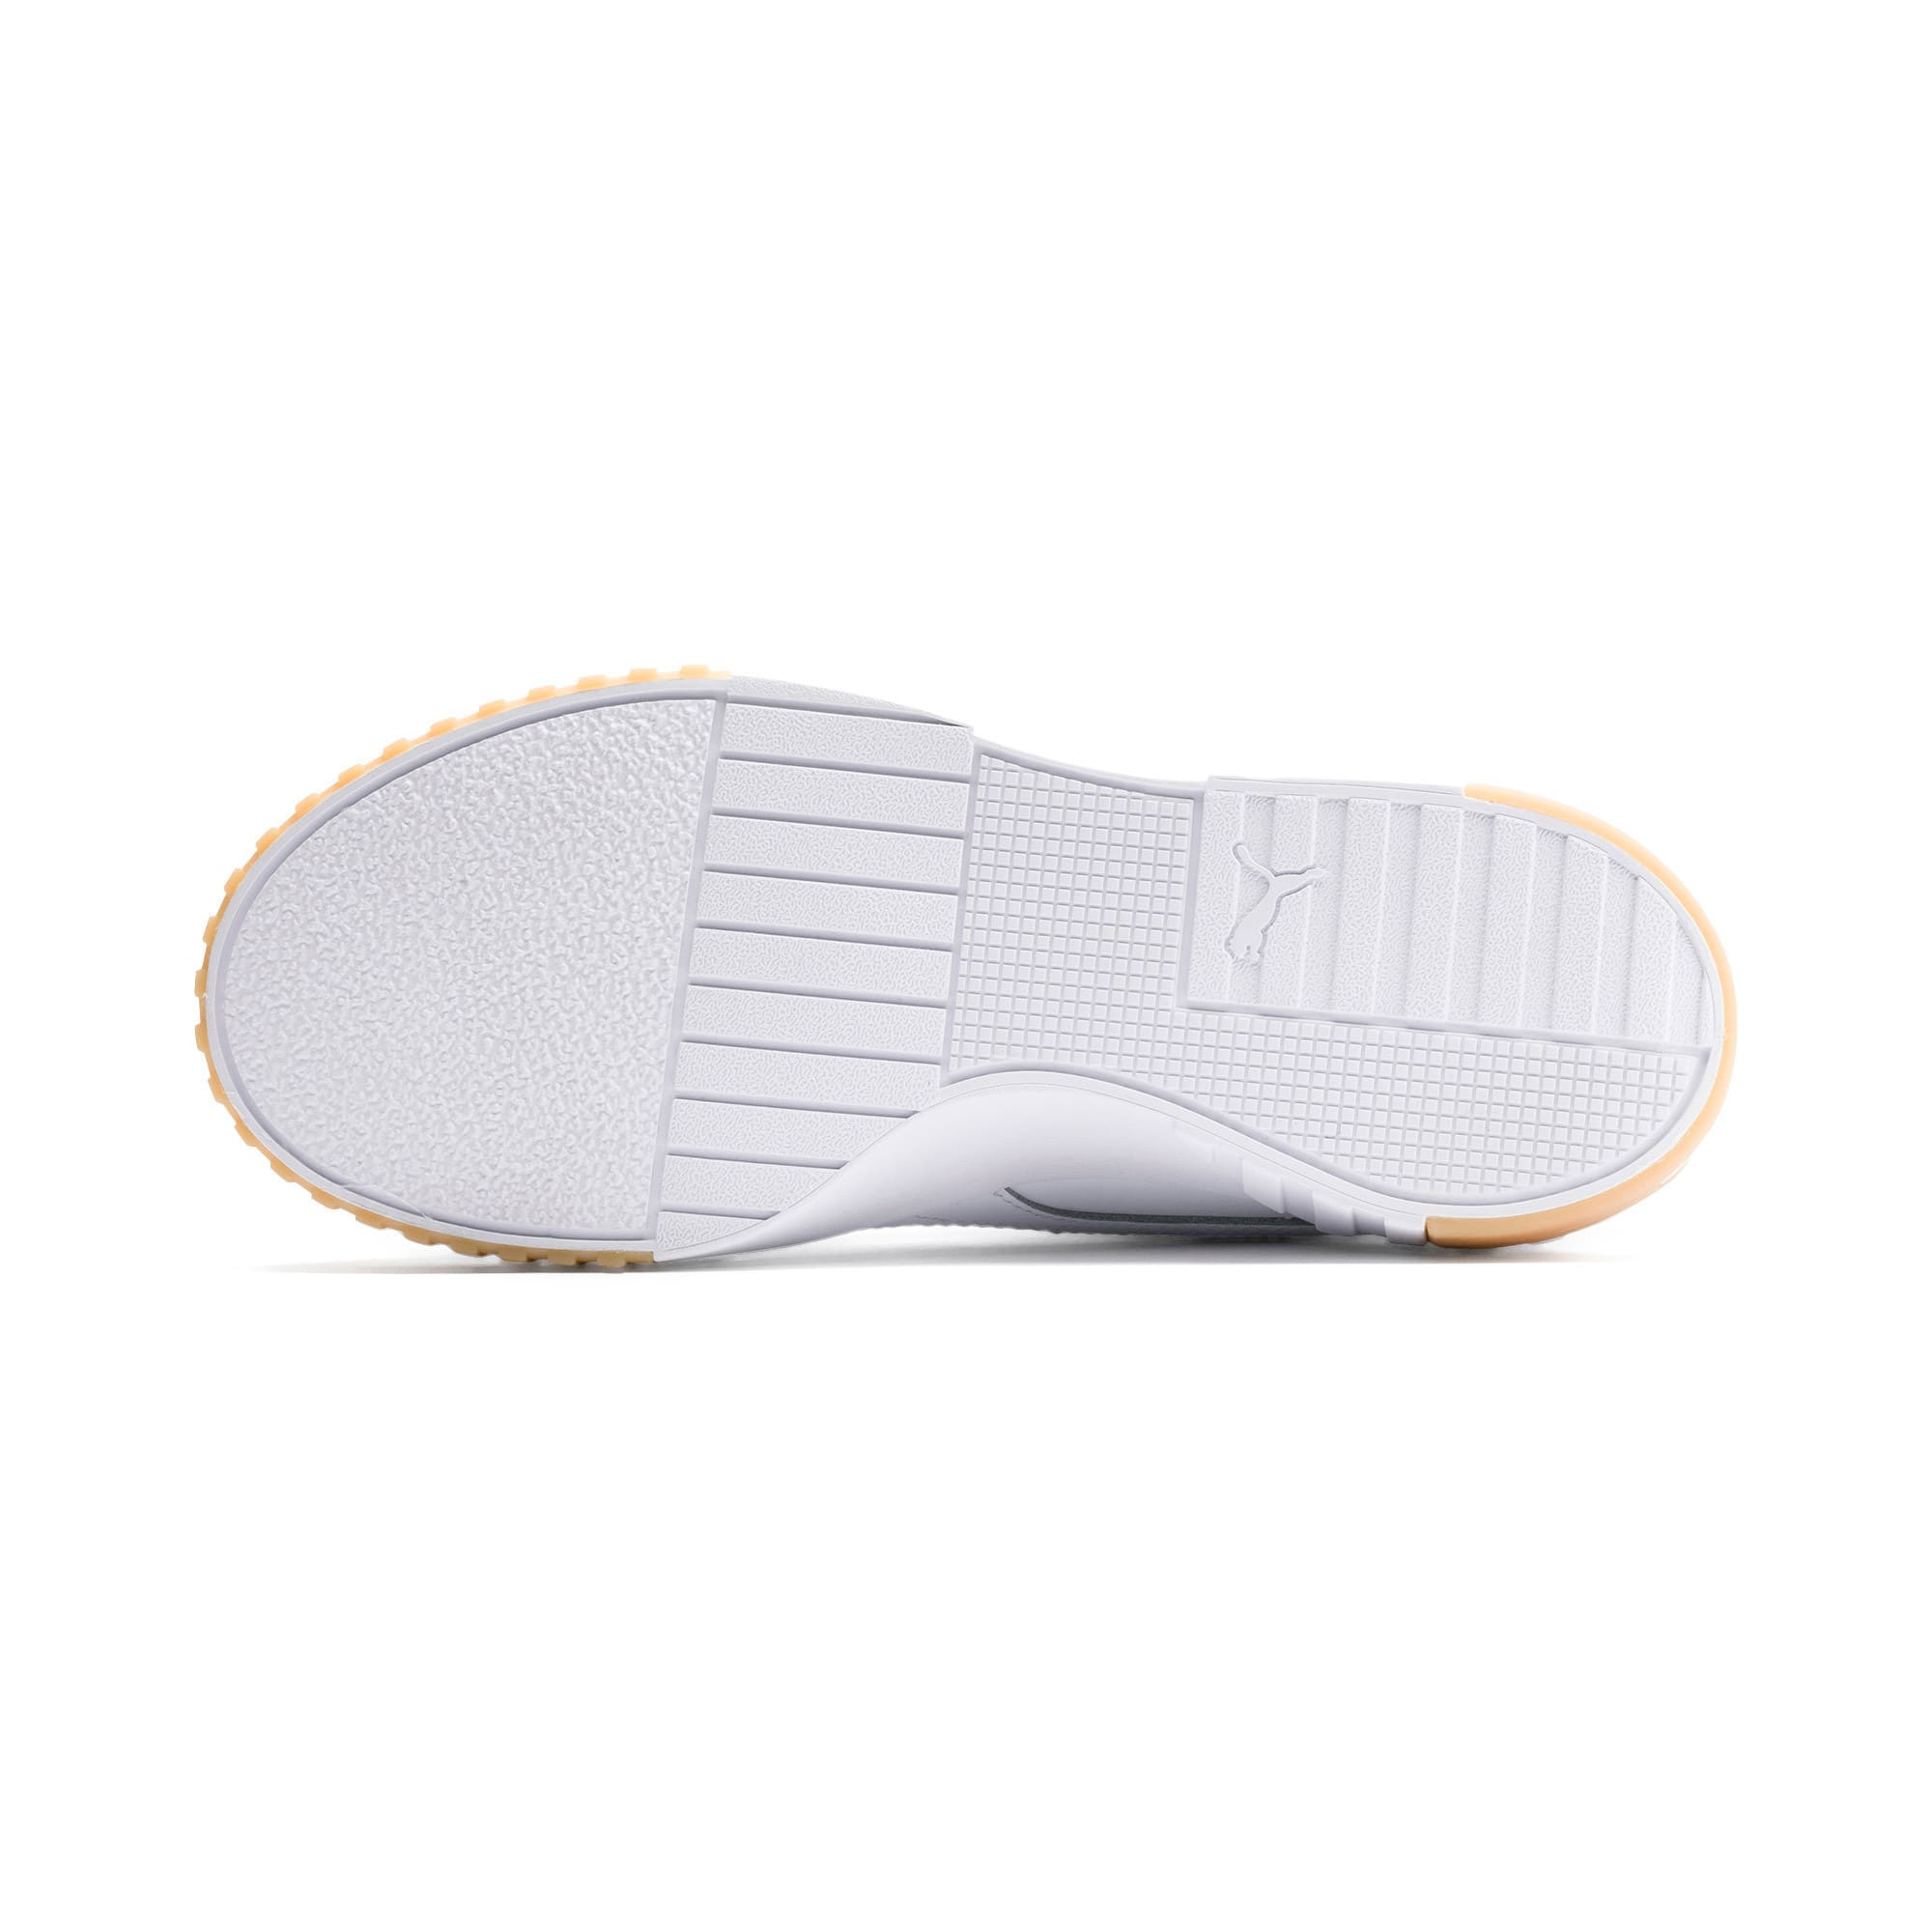 Thumbnail 4 of Zapatillas de mujer Cali Exotic, Puma White-Puma White, medium